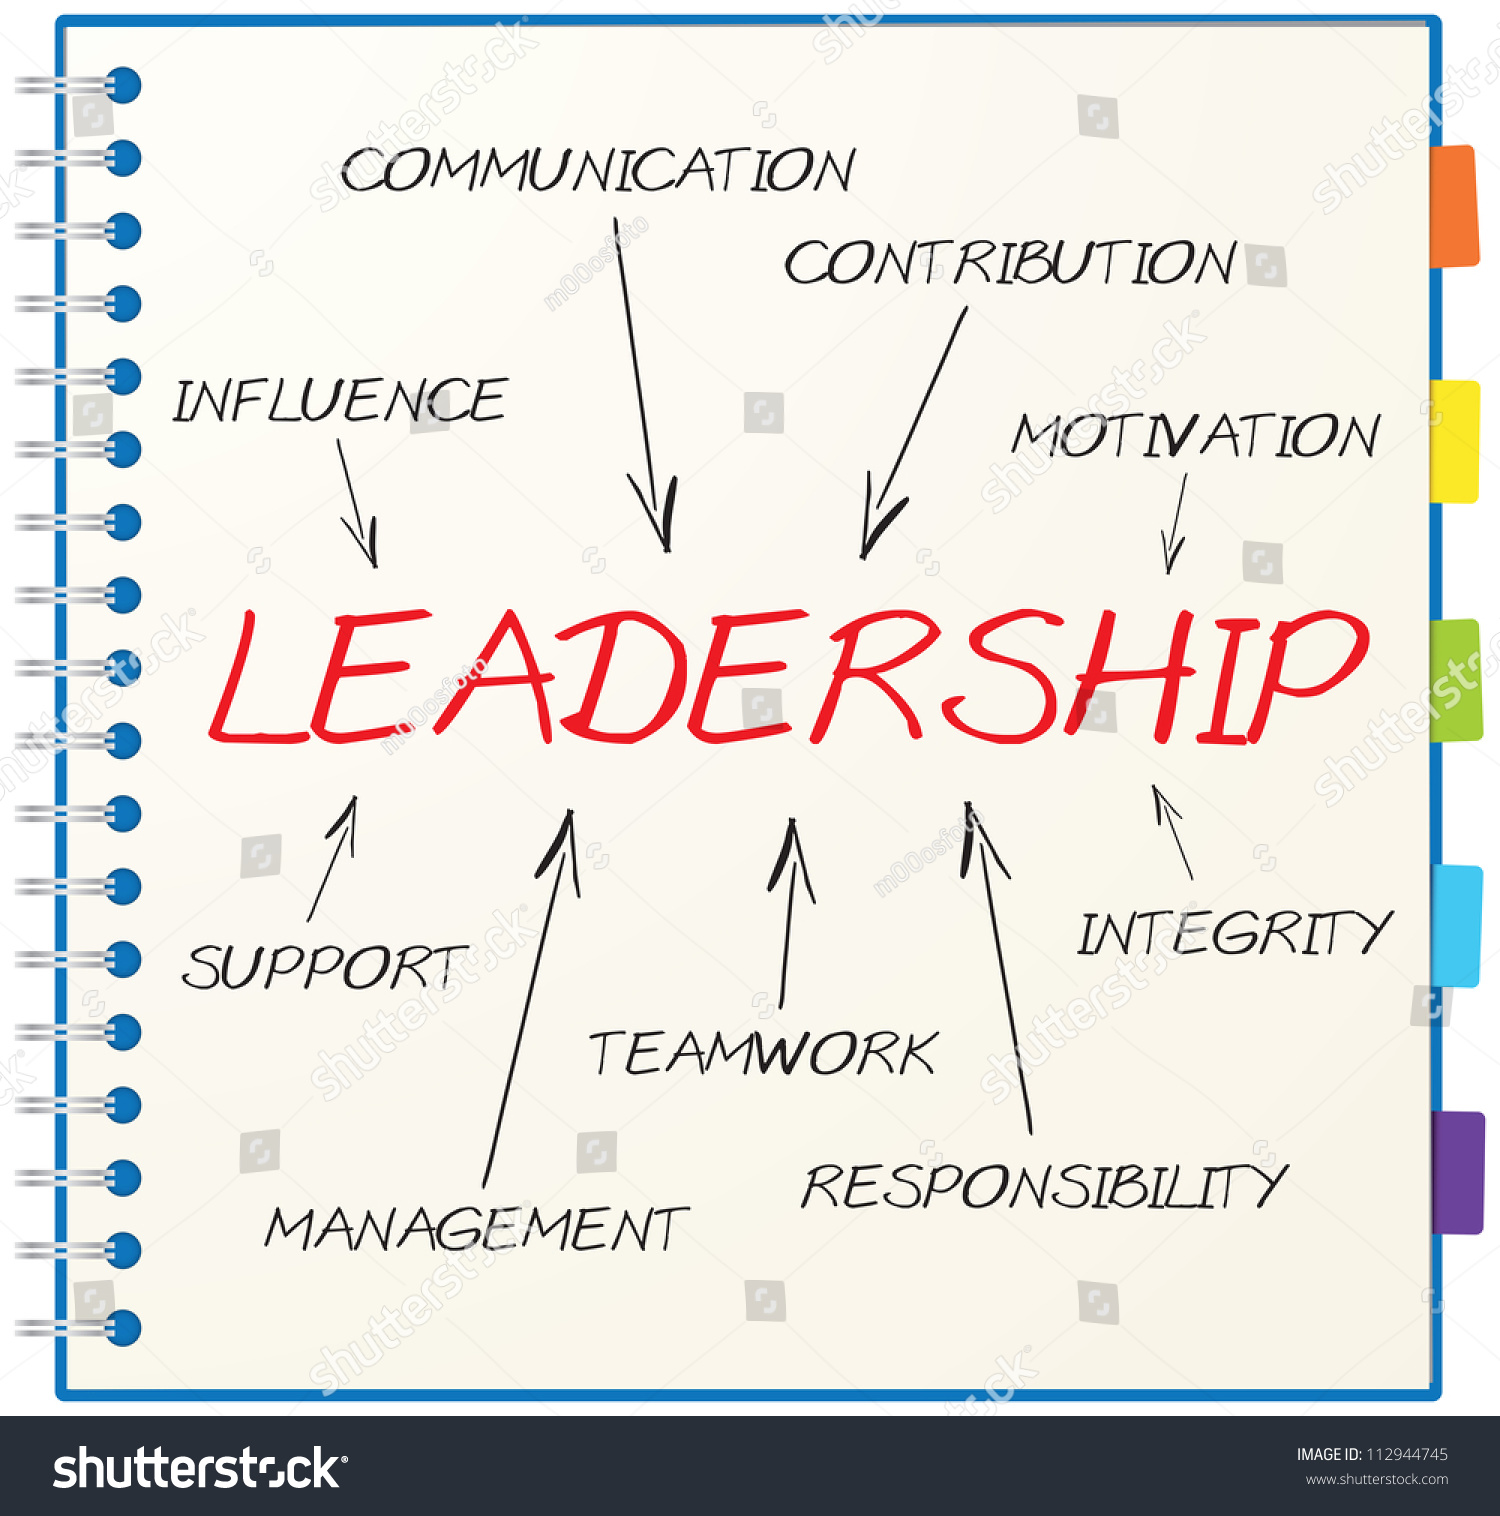 concept leadership consists support integrity influence stock concept of leadership consists of support integrity influence teamwork motivation management